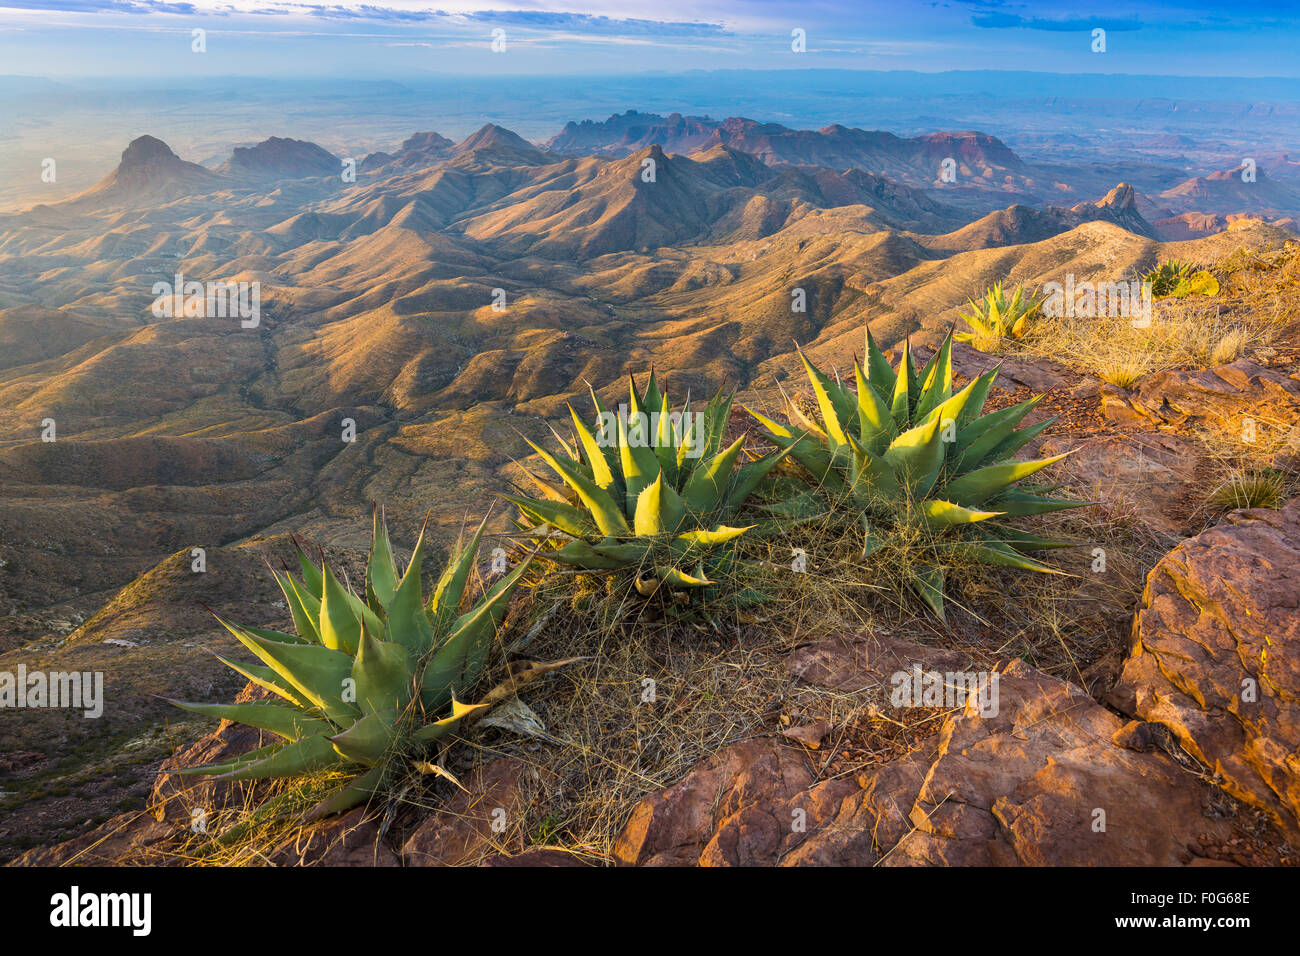 Big Bend National Park in Texas is the largest protected area of Chihuahuan Desert the United States. Stock Photo